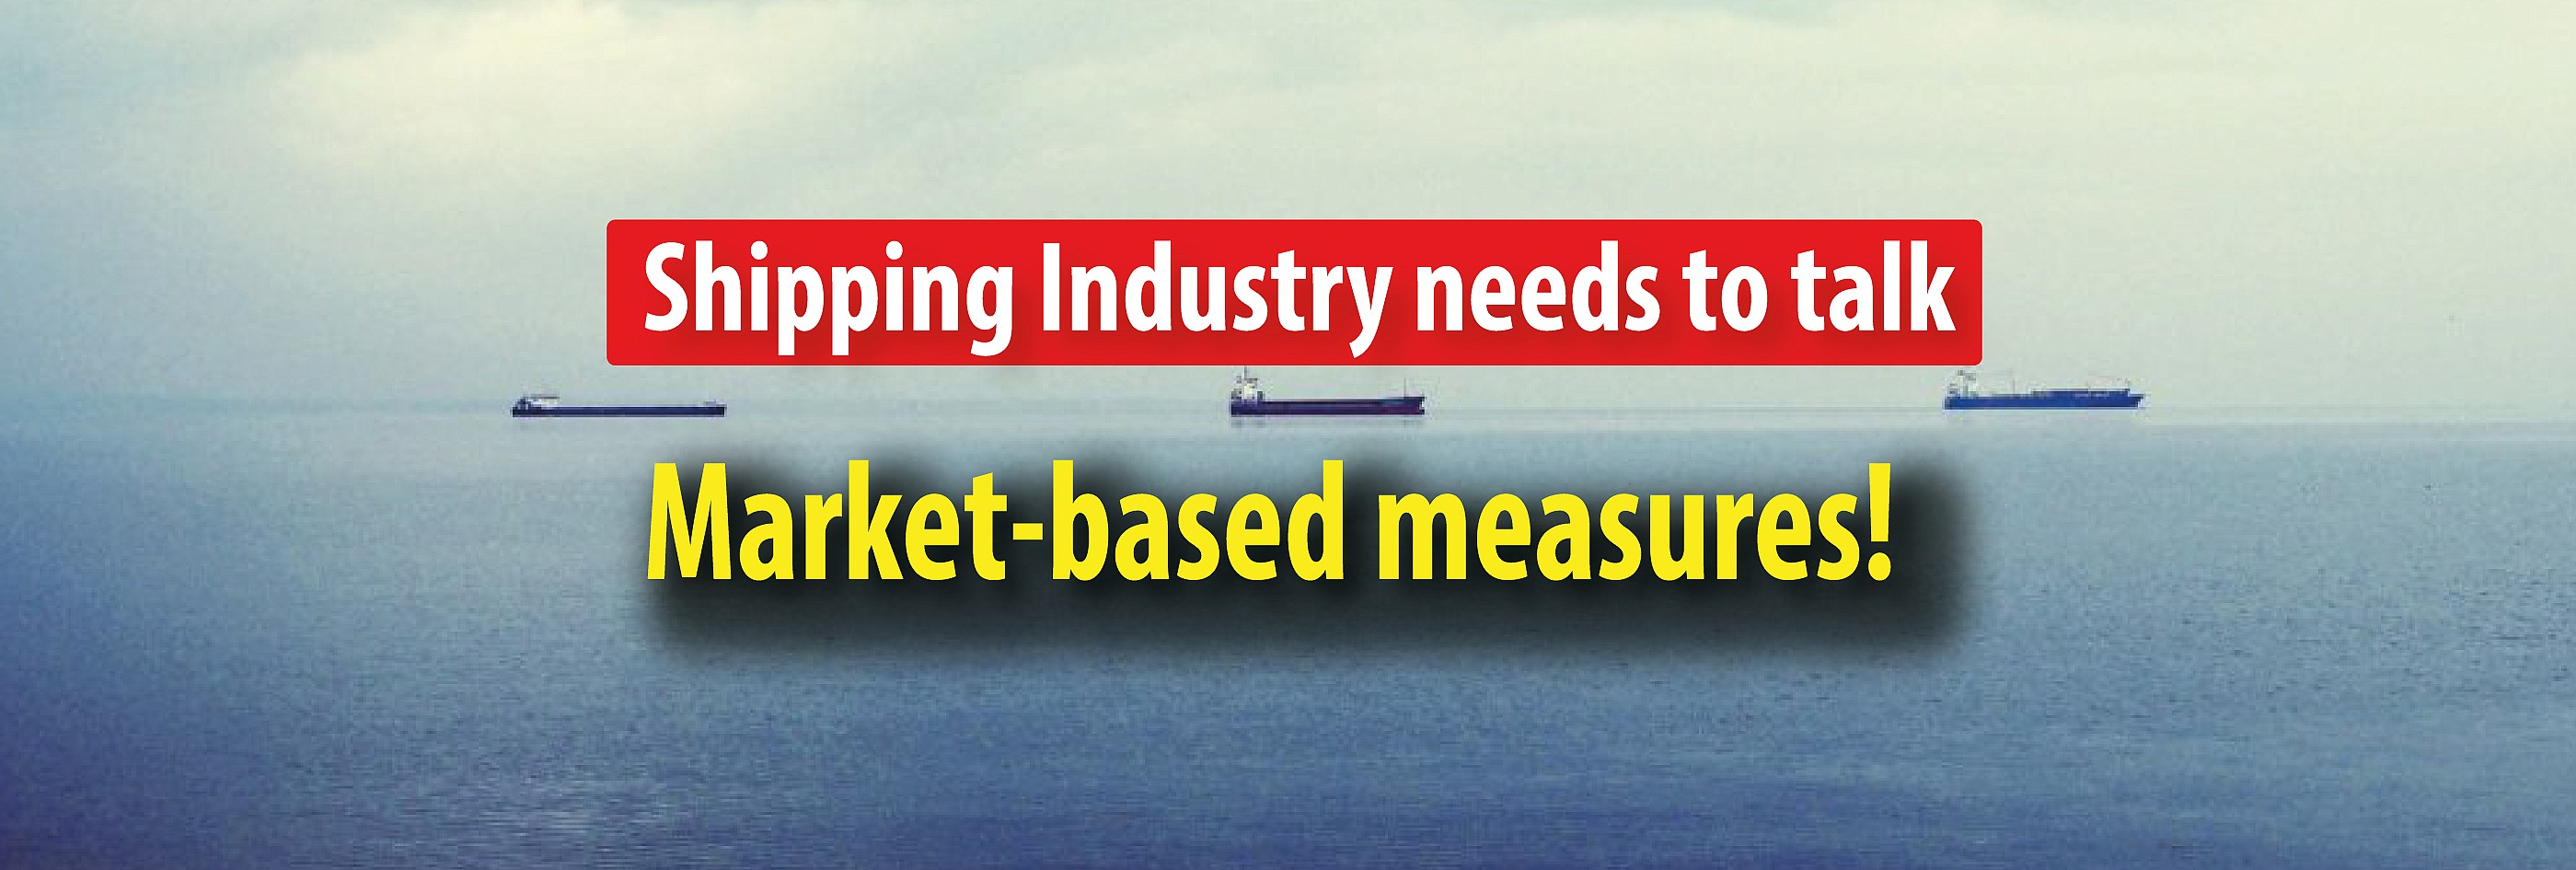 BIMCO: Shipping Industry needs to talk market-based measures!